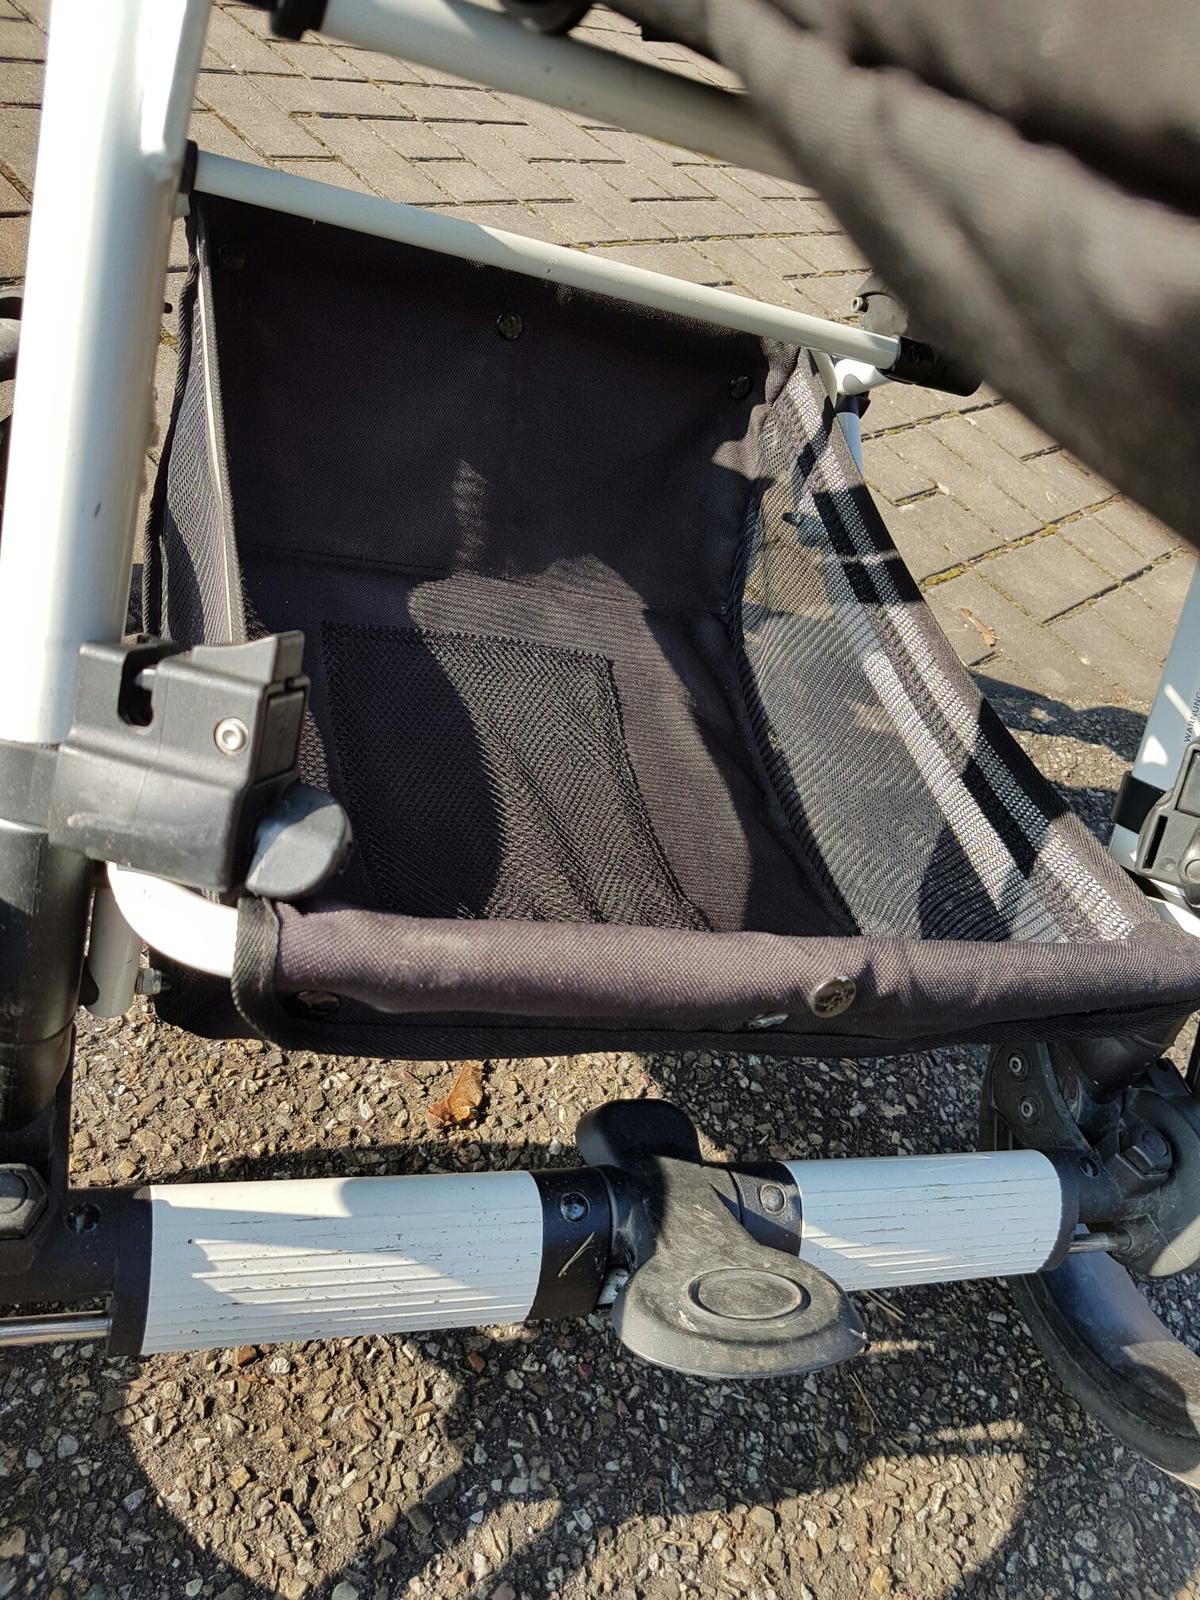 Abc Turbo 6 Zum Buggy Umbauen Abc Monster Design Turbo 4s In 90469 Nürnberg For 99 00 For